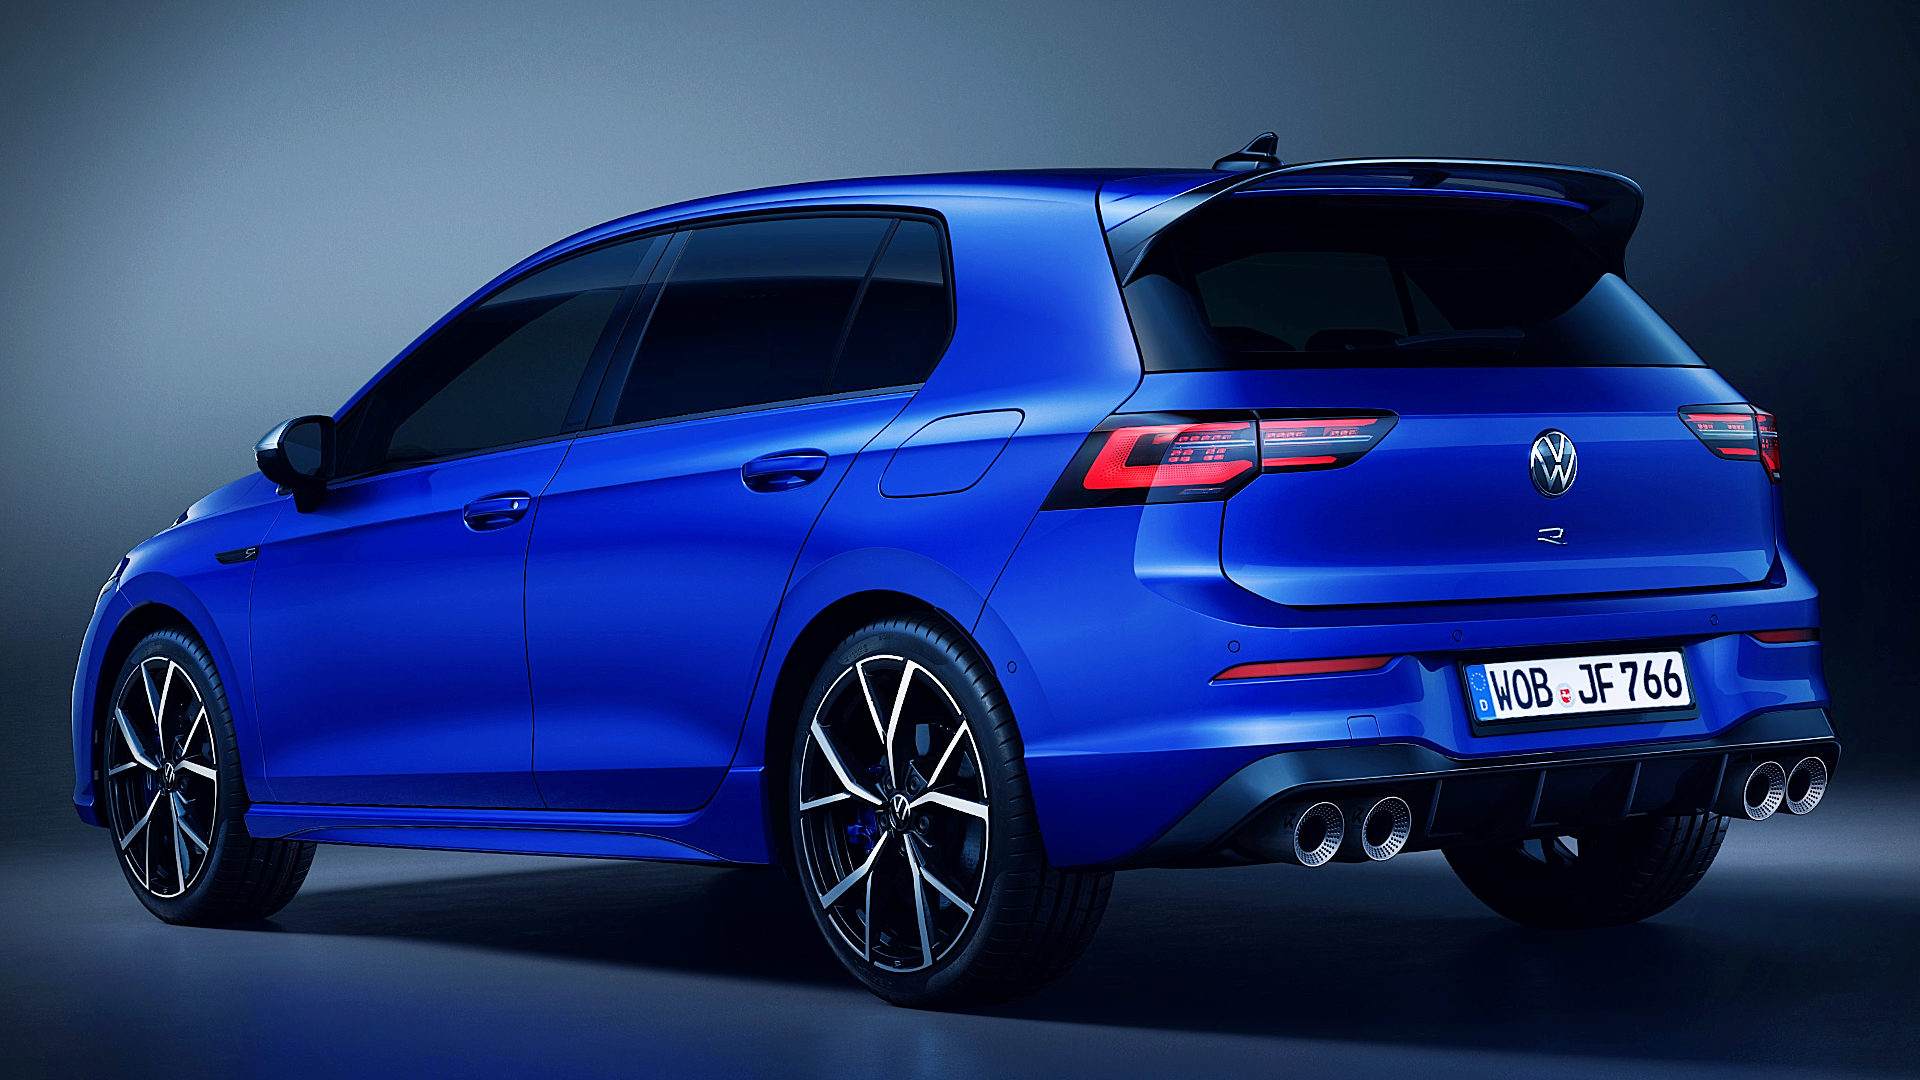 The back image of the Volkswagen Golf R